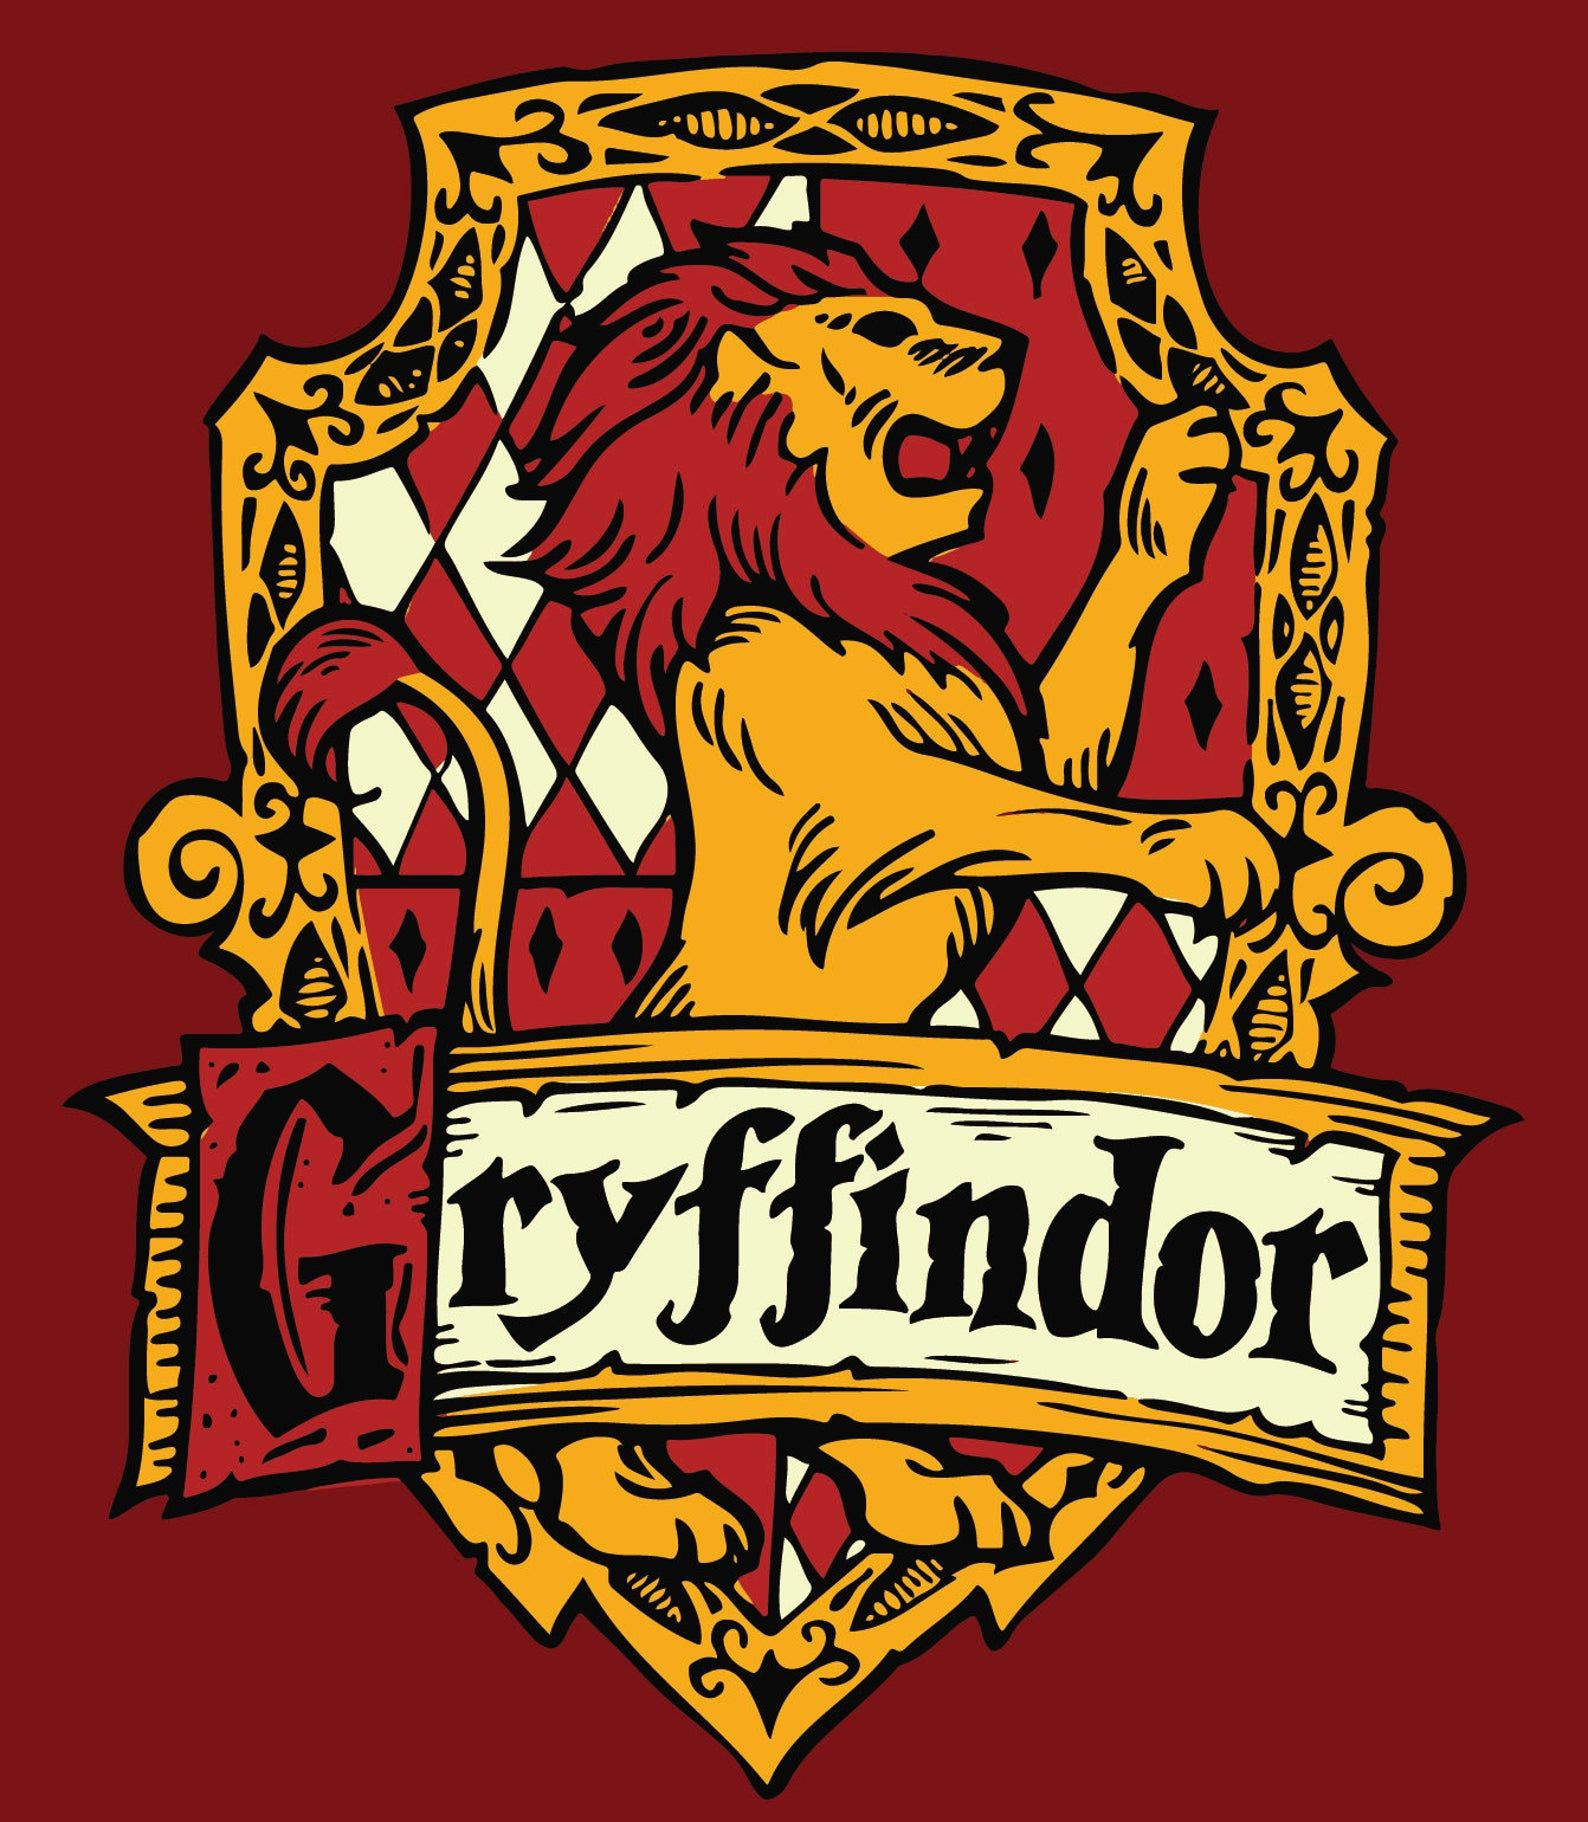 Hogwarts House Vector Downloads High Quality Versions Of The Etsy Harry Potter Wallpaper Harry Potter Images Harry Potter Aesthetic